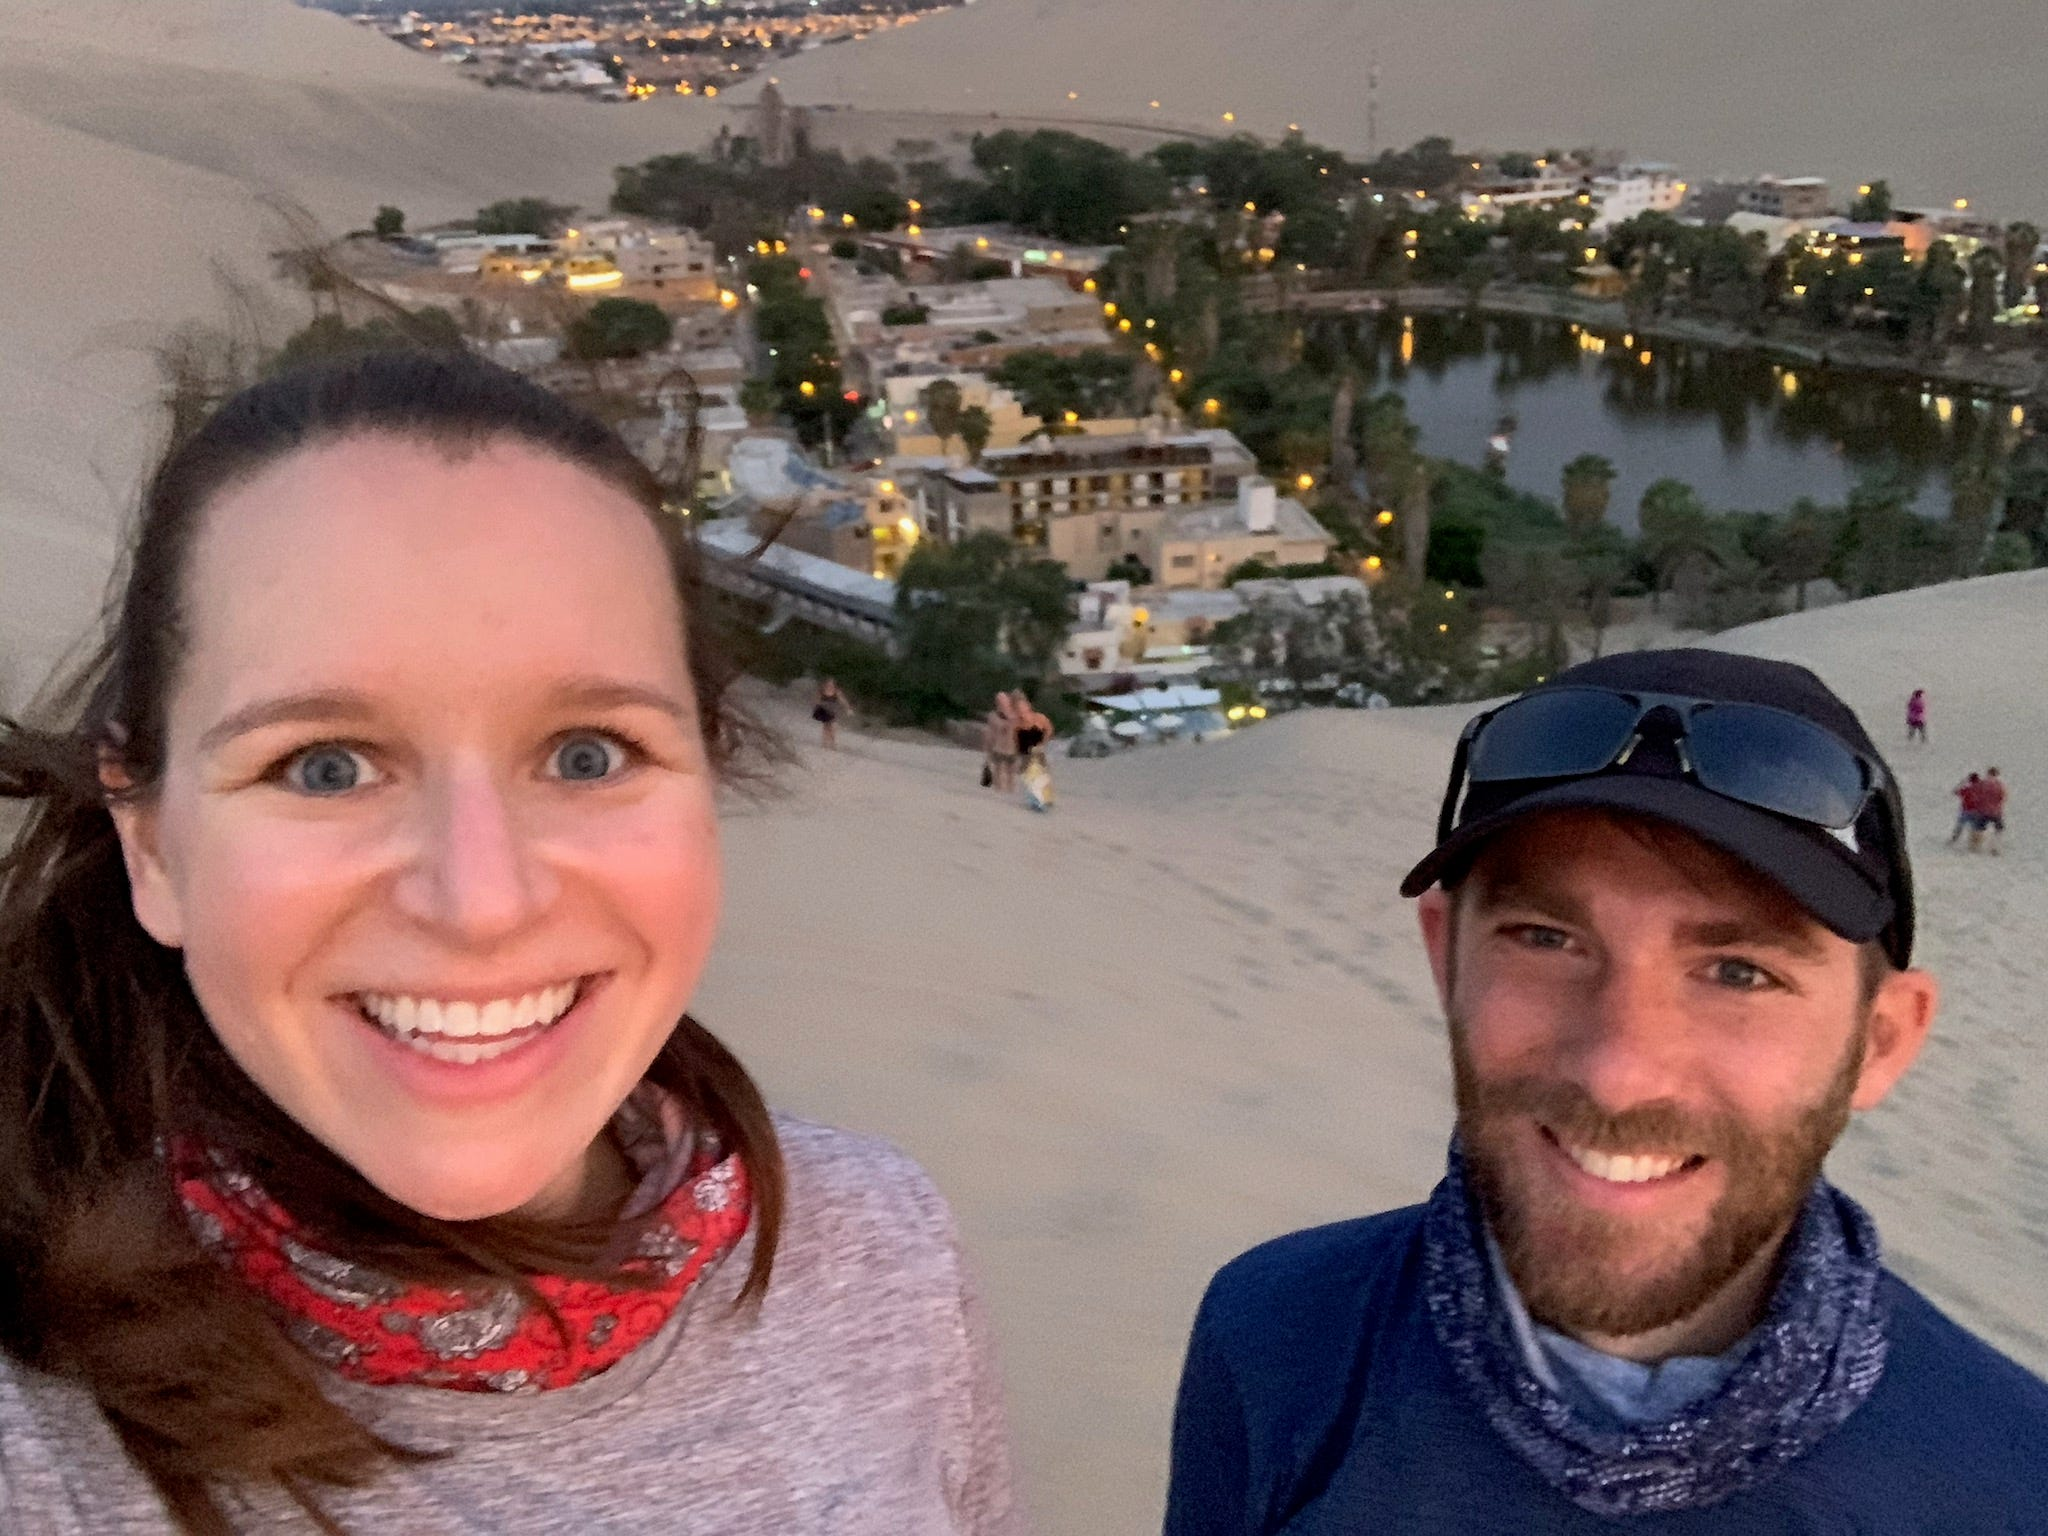 Jonathan and Melissa Robbins, Nashville residents, traveled to Peru on vacation in mid-May. Now, they're stuck in Cusco, a historic mountain town, with no idea when they will be able to get home. Before learning of the national lockdown and heading into quarantine in a Cusco hotel, the pair visited a desert resort in Huacachina, pictured.